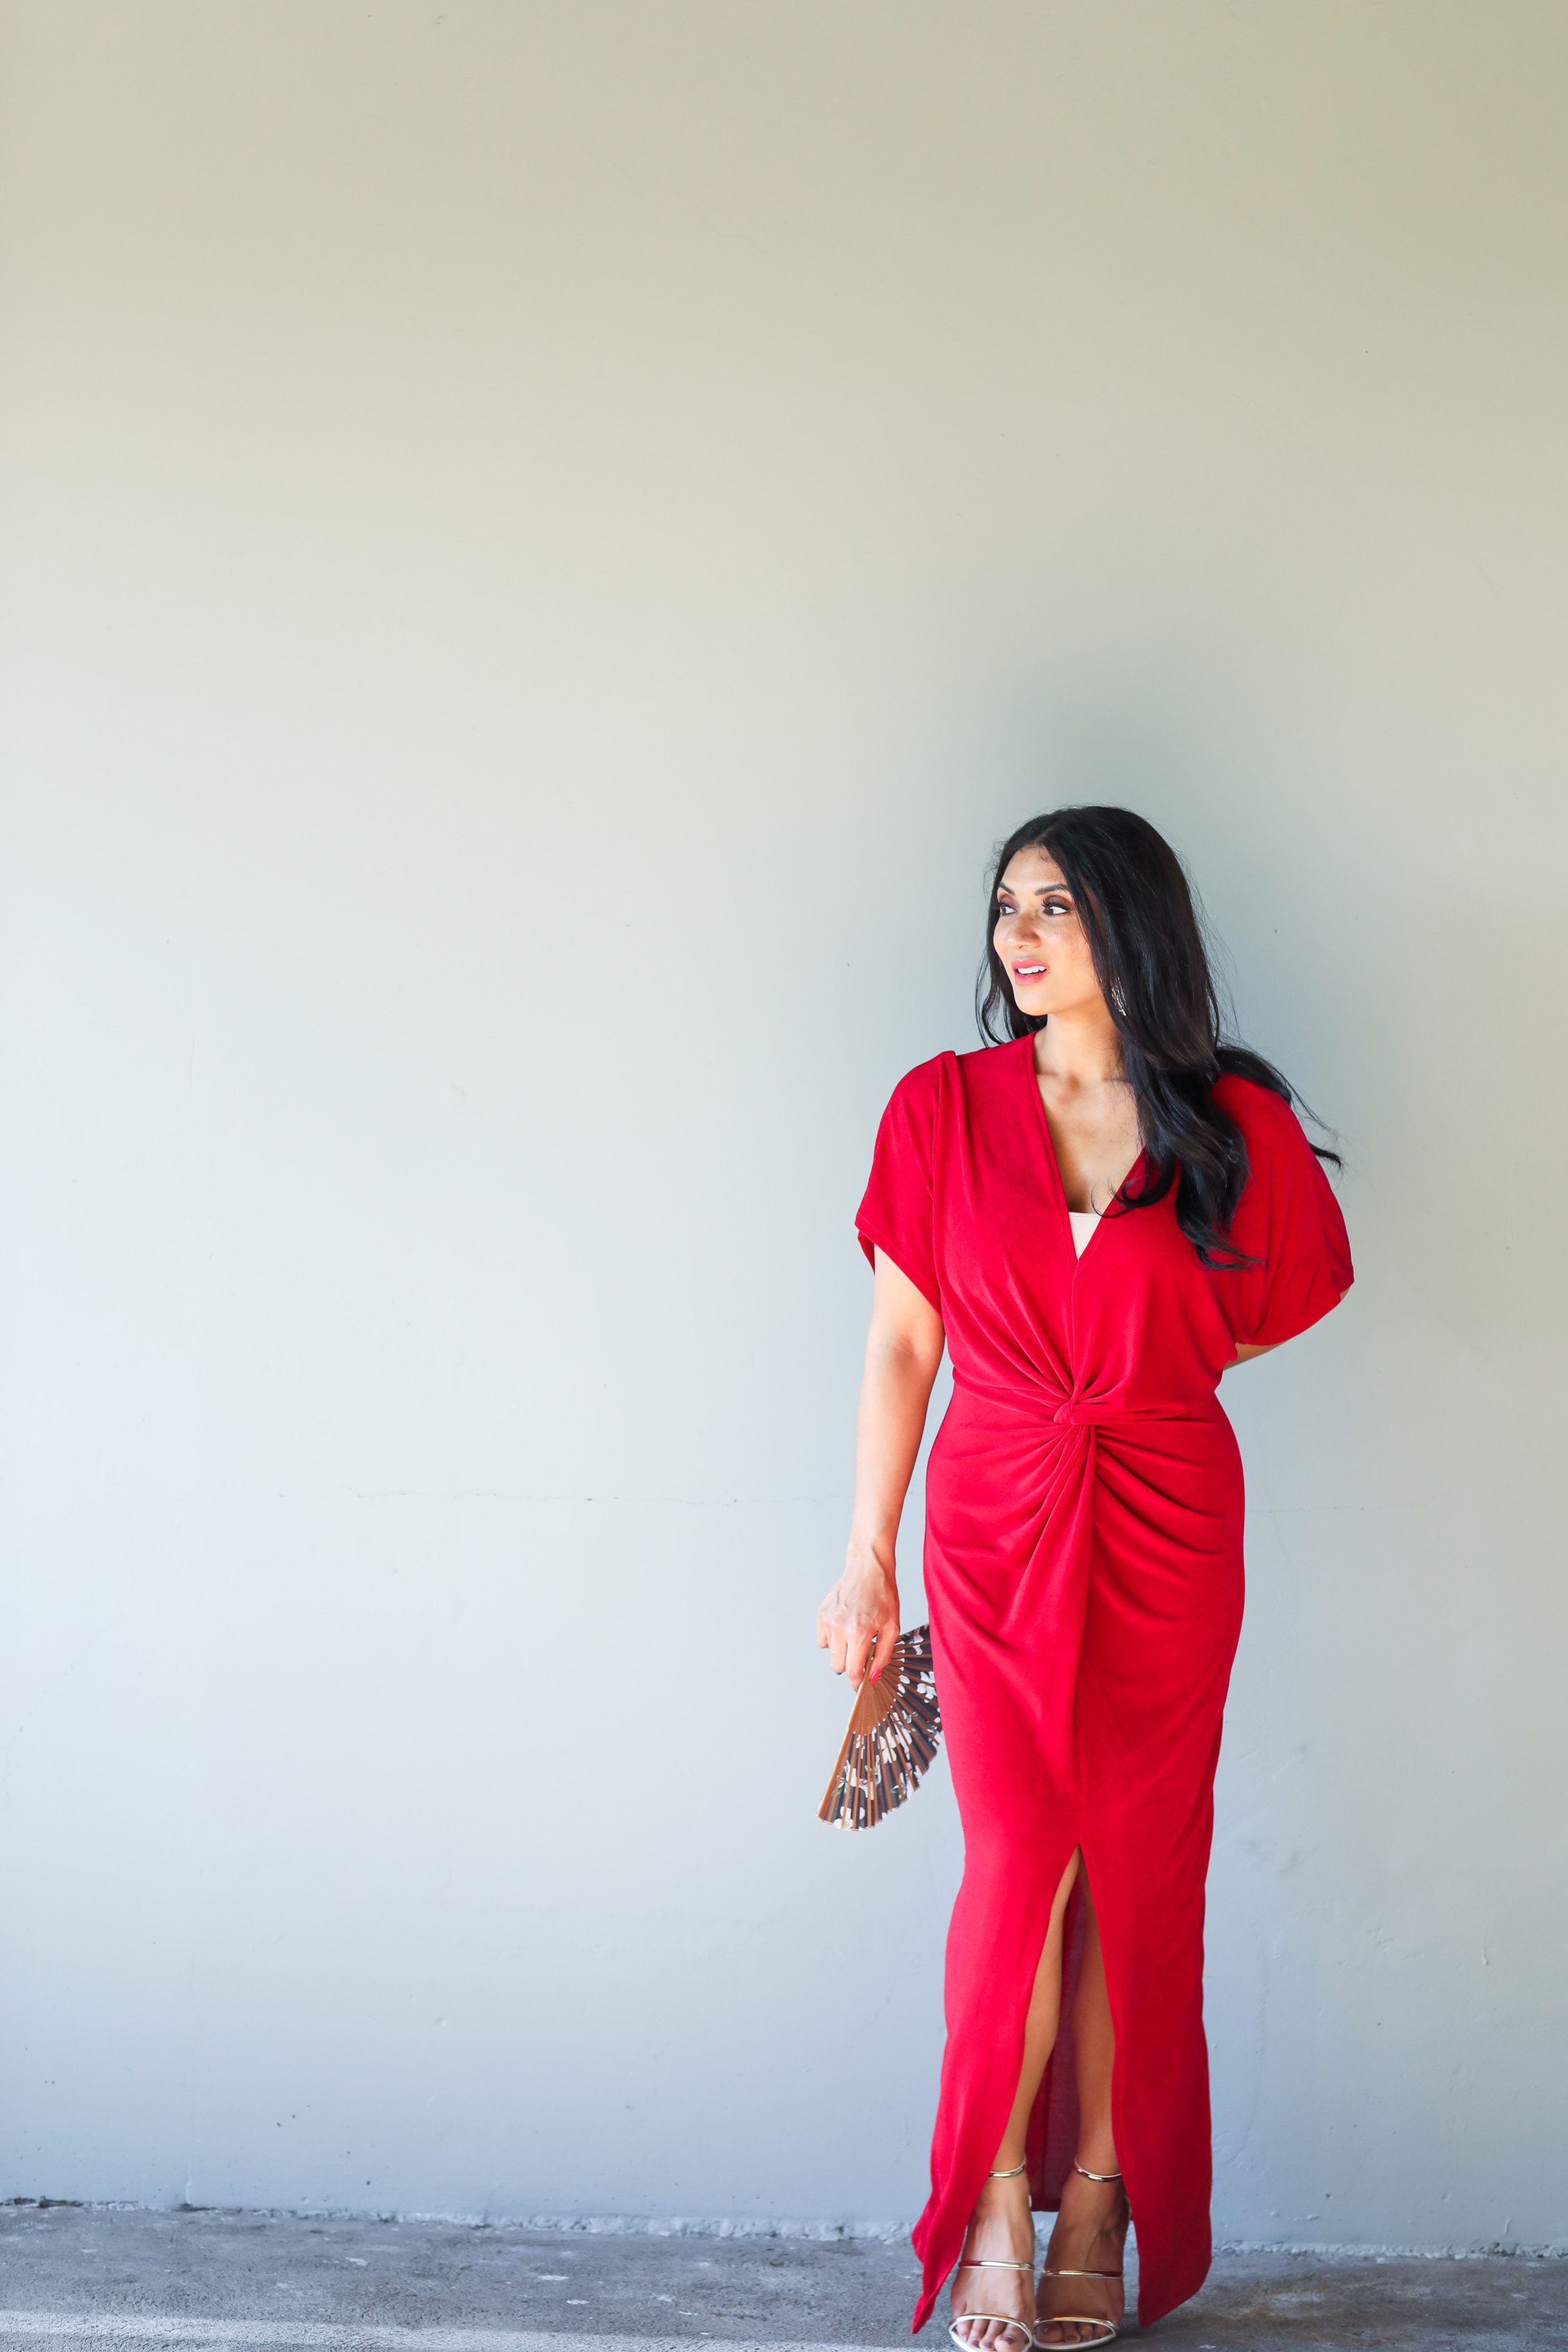 The Only Dress You Need on Amazon [Fashion] - Red Maxi Dress - Found It On Amazon